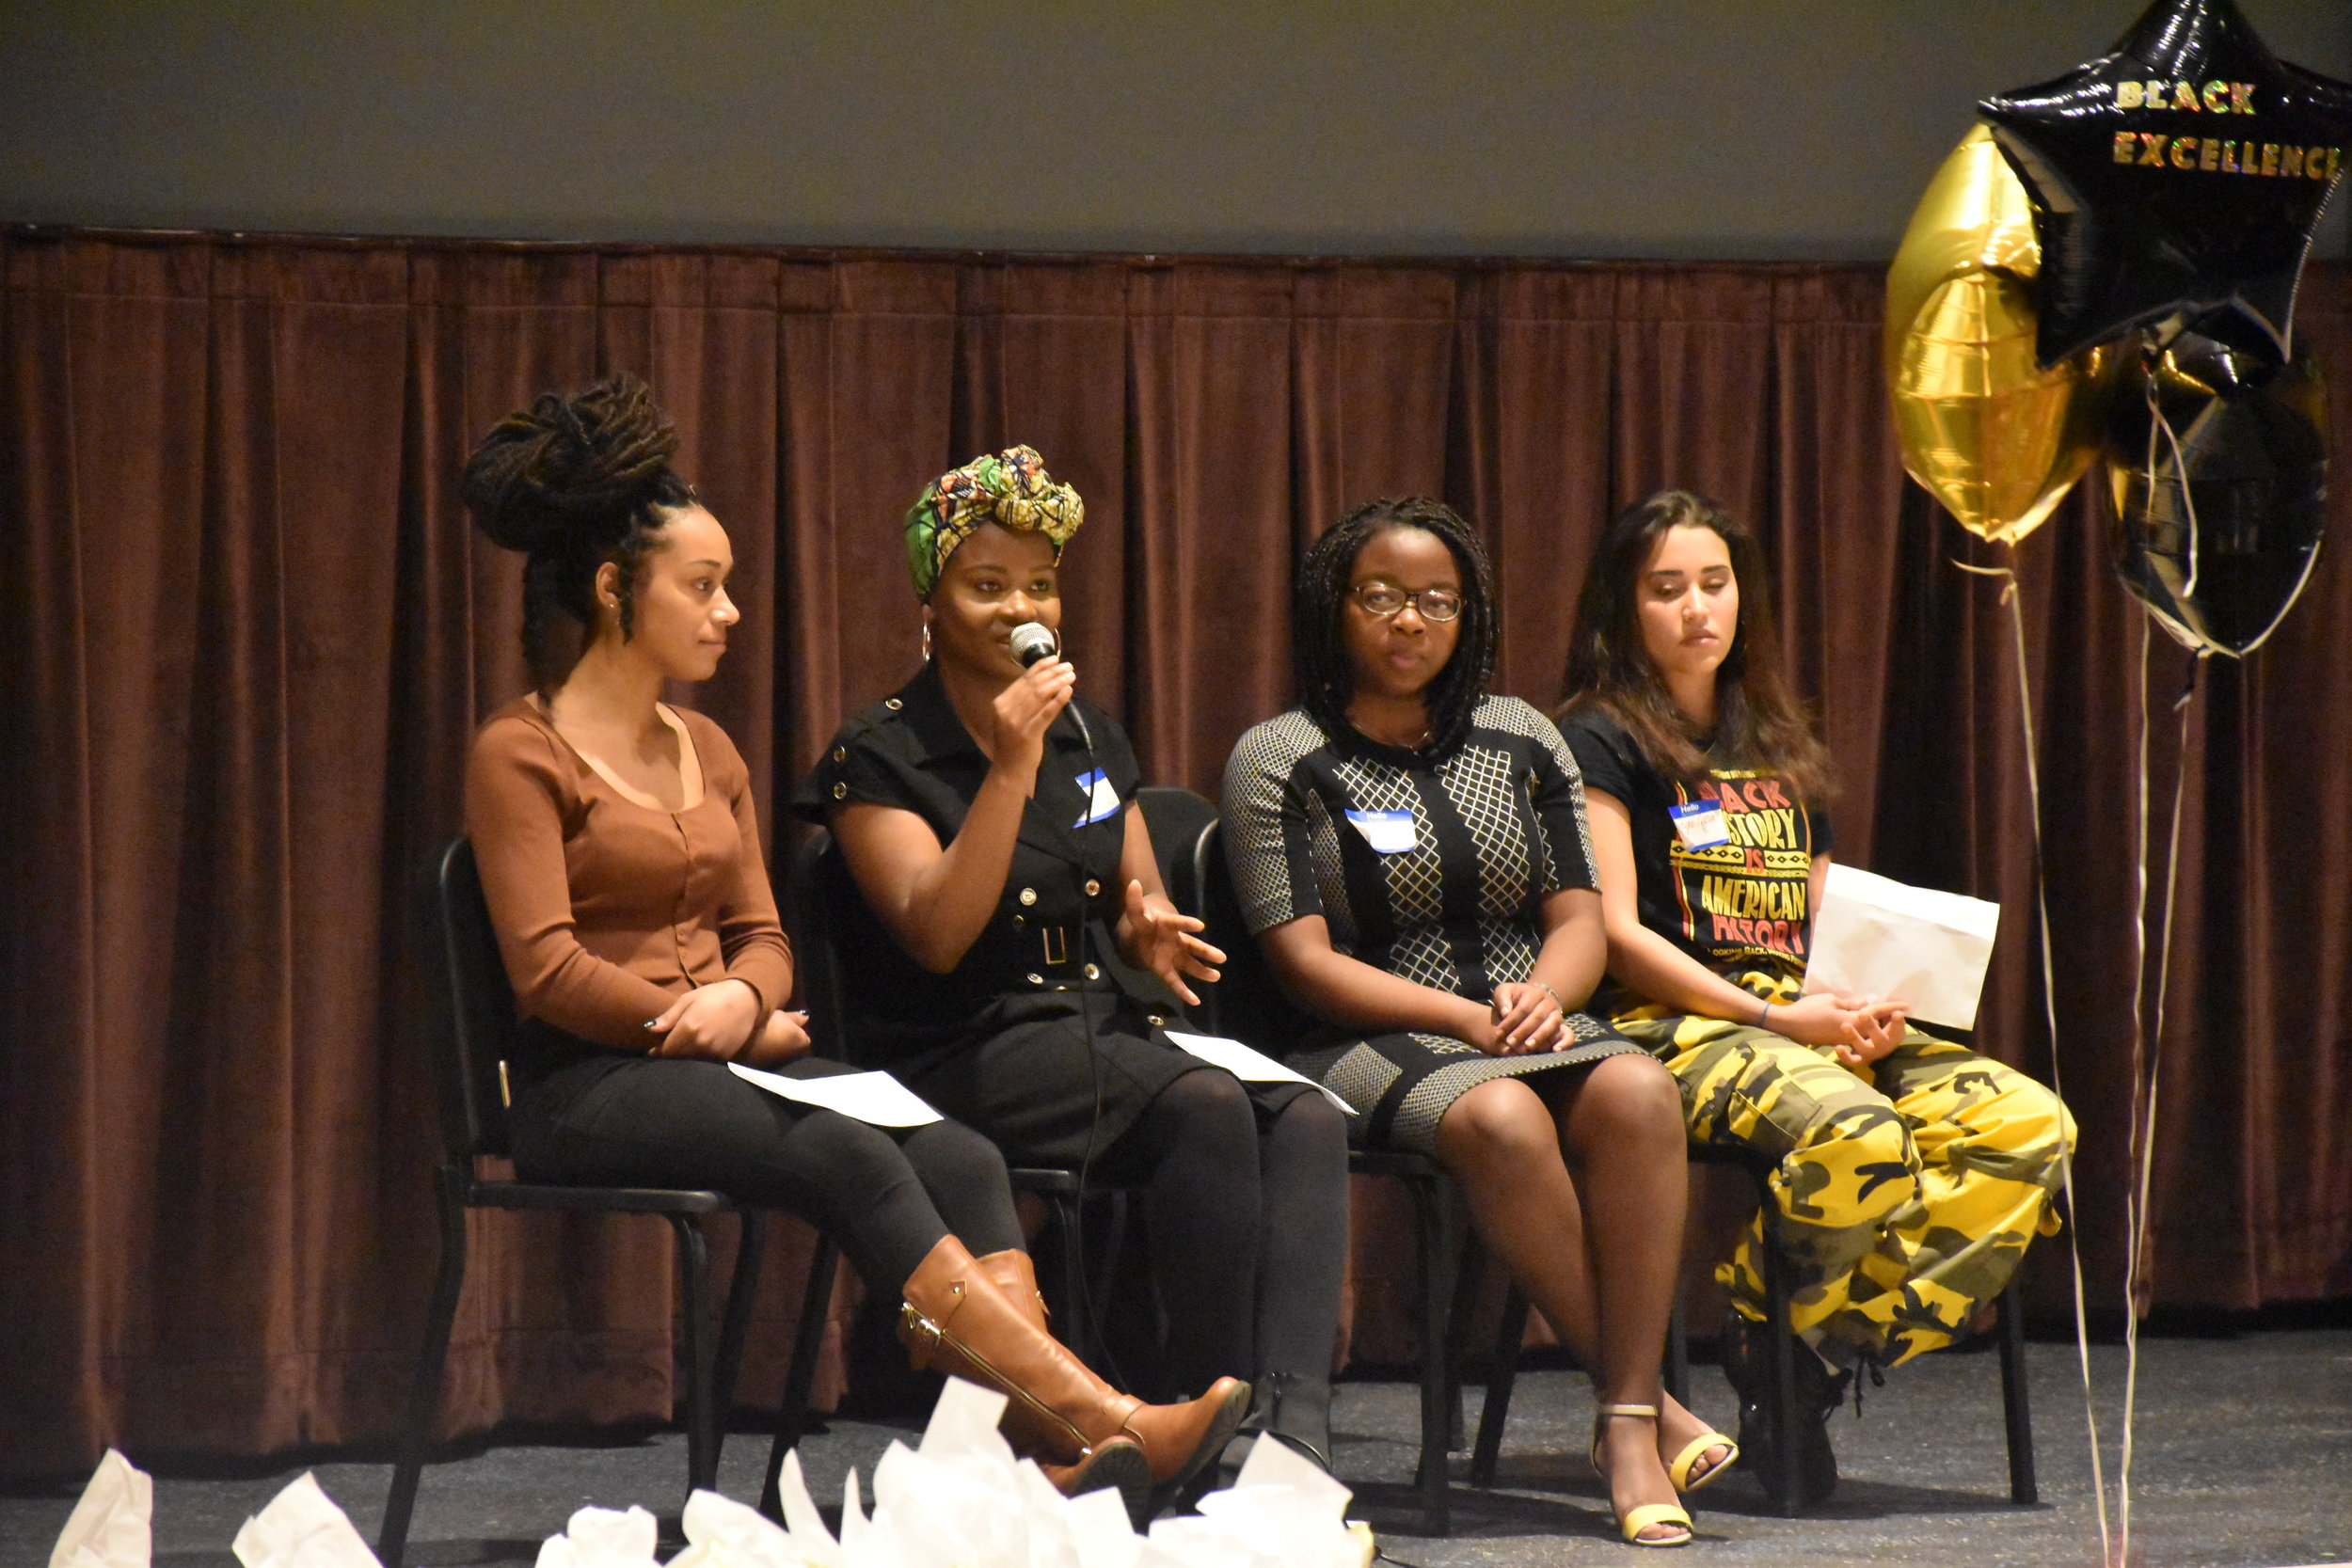 Roosevelt Youth Panel - How Oregon Educational System is Failing Black Students